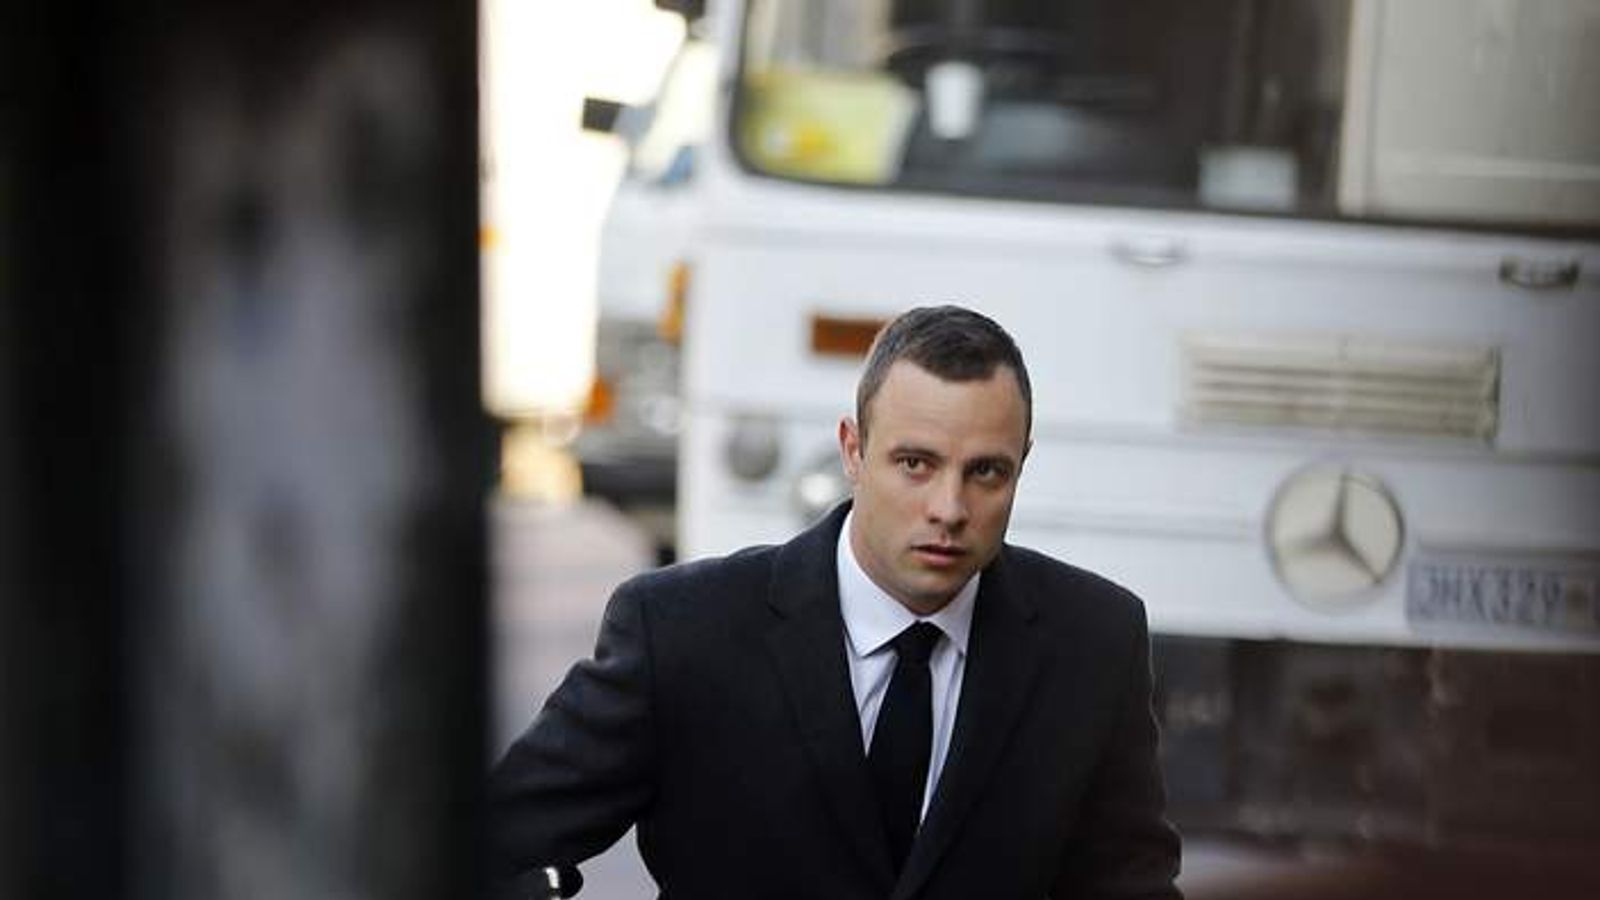 Olympic and Paralympic track star Oscar Pistorius arrives ahead of his trial for the murder of his girlfriend Reeva Steenkamp